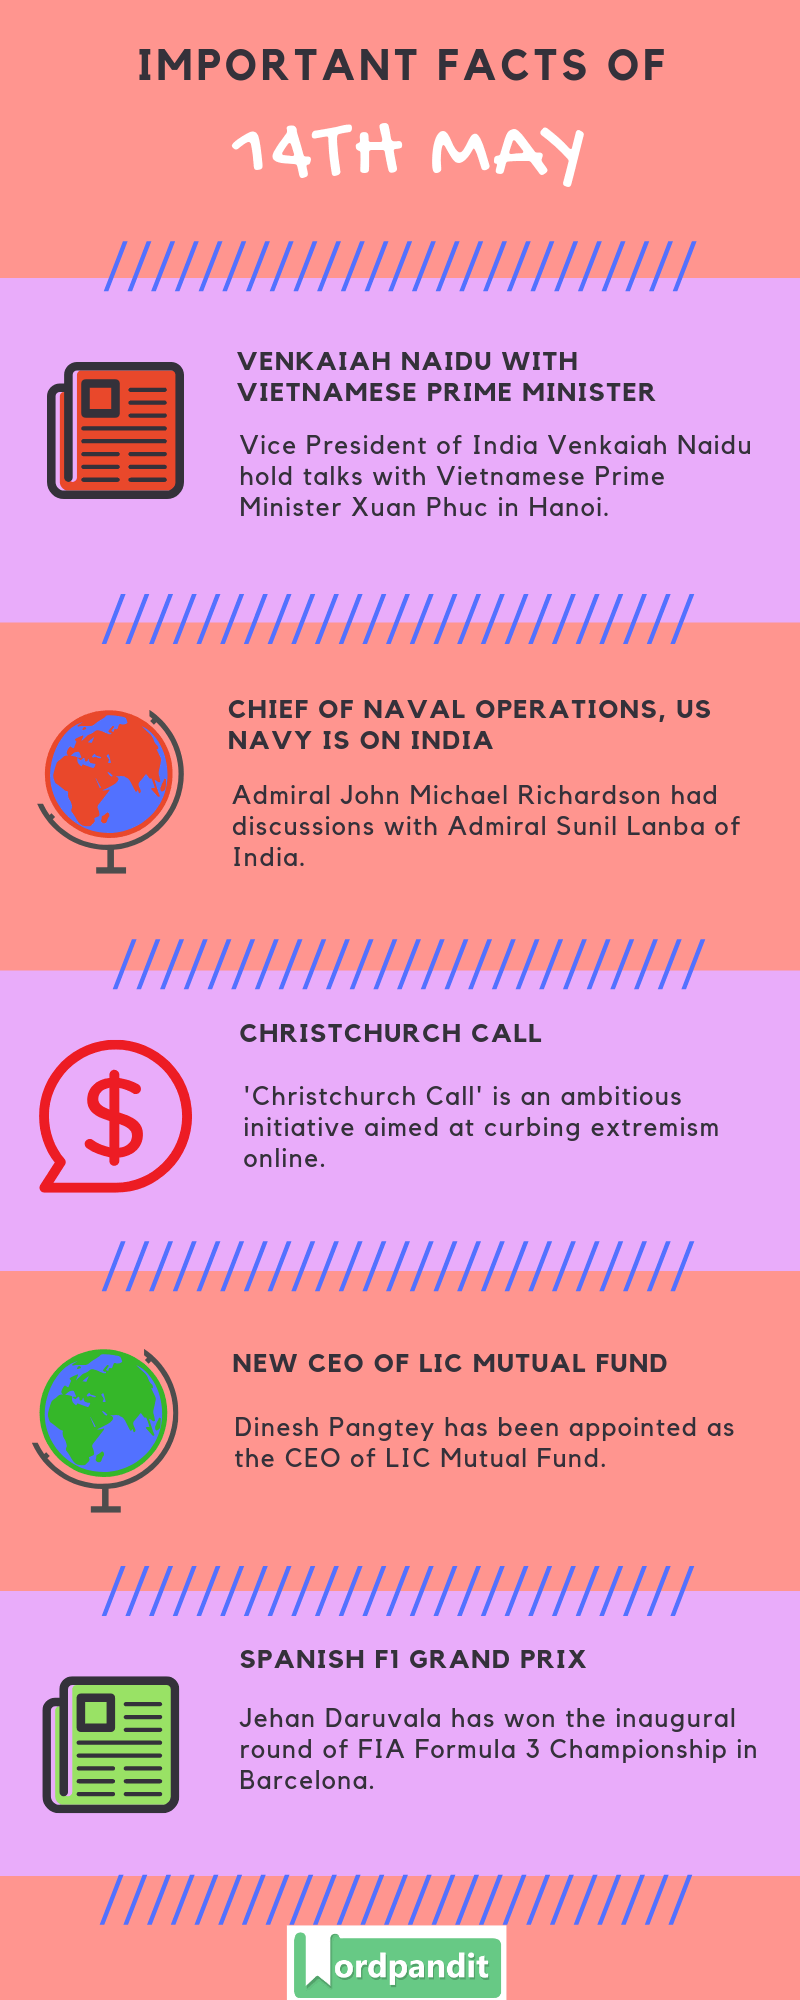 Daily Current Affairs 14 May 2019 Current Affairs Quiz 14 May 2019 Current Affairs Infographic